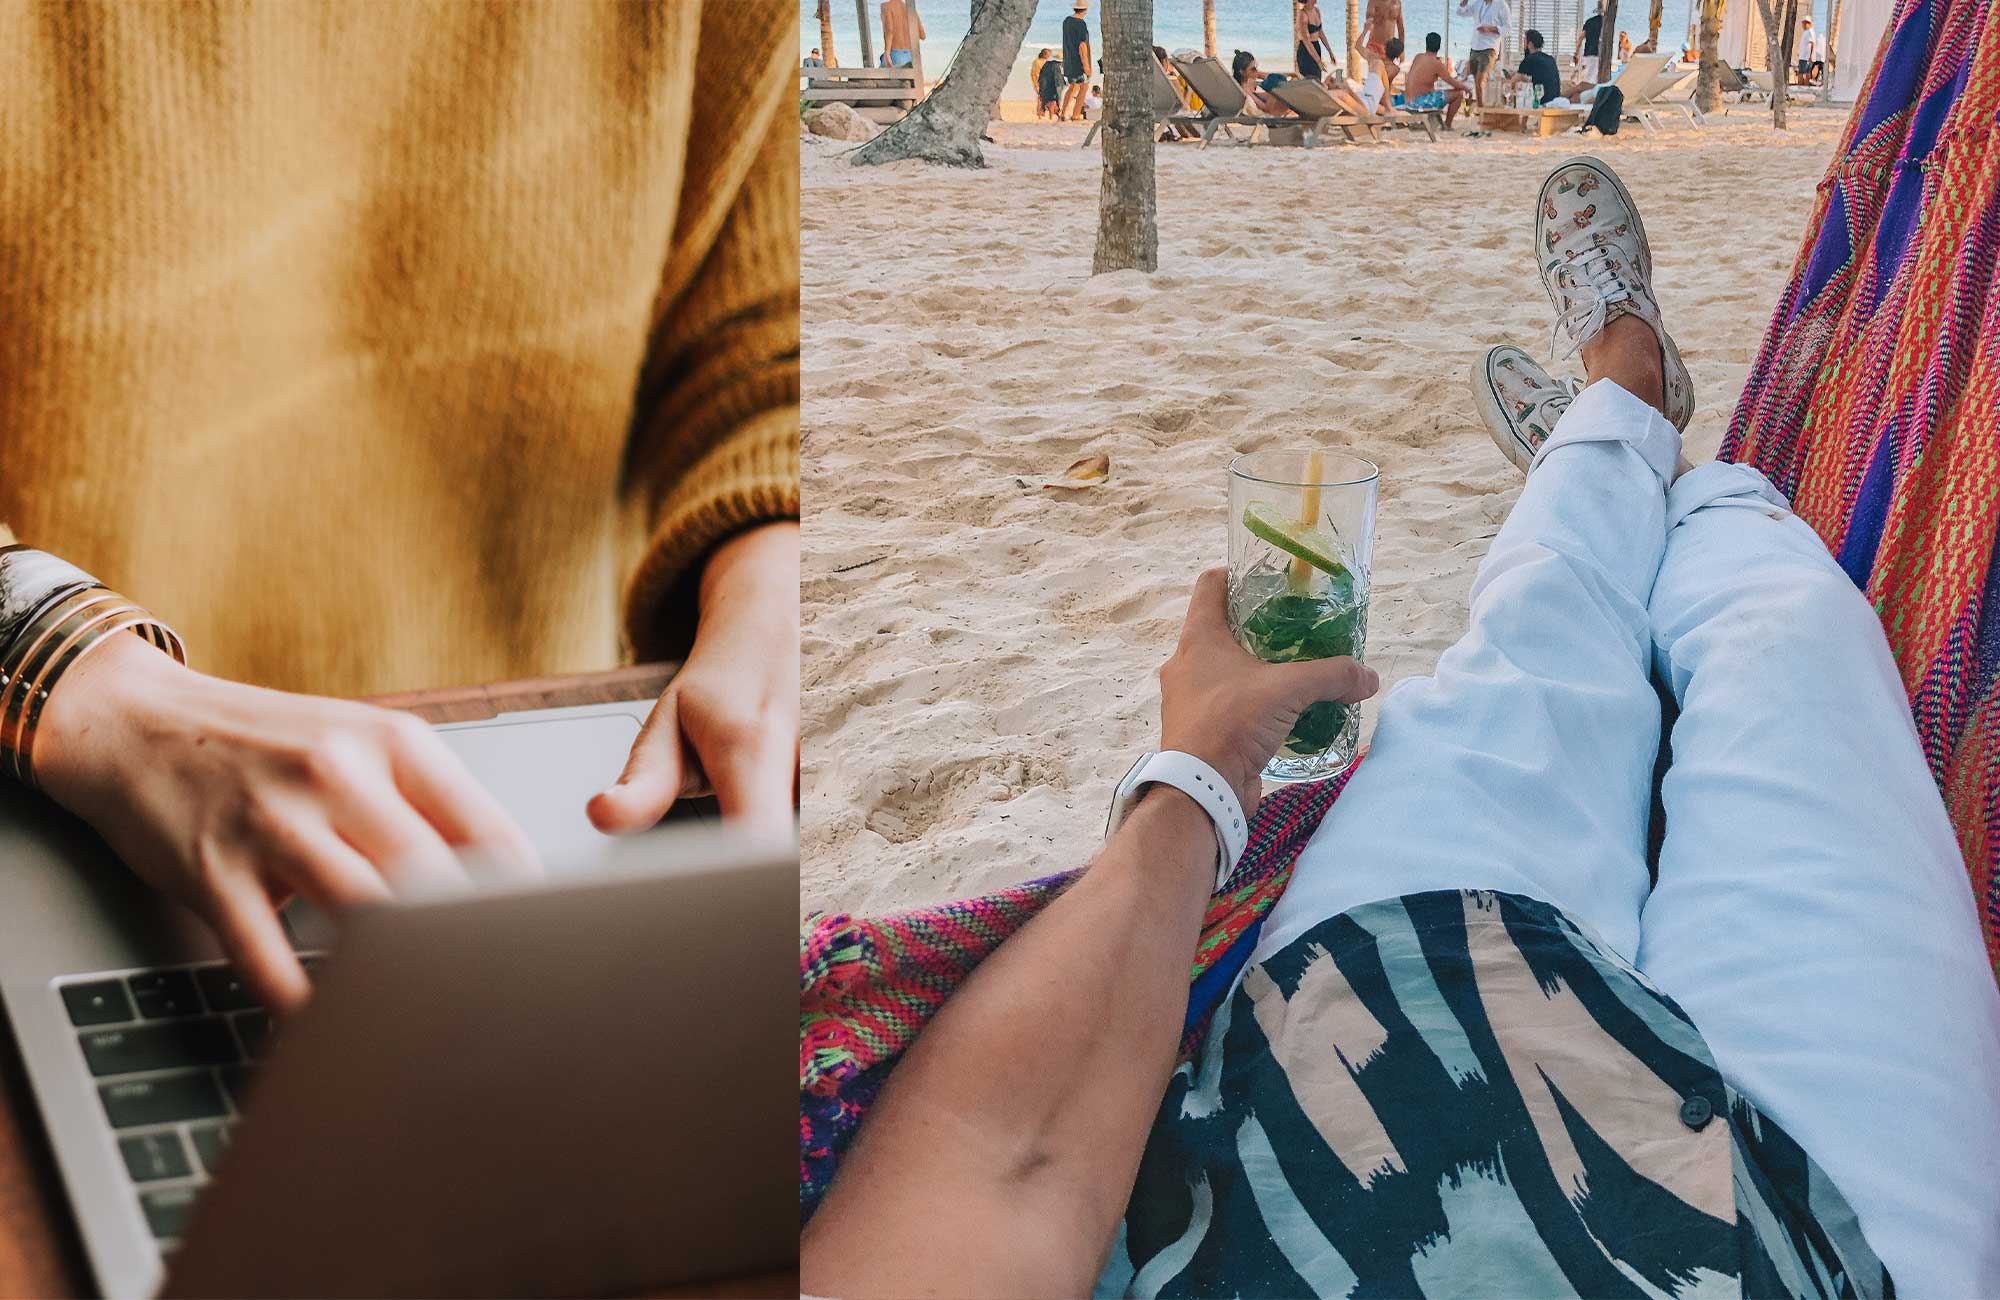 working at the office vs working at the beach